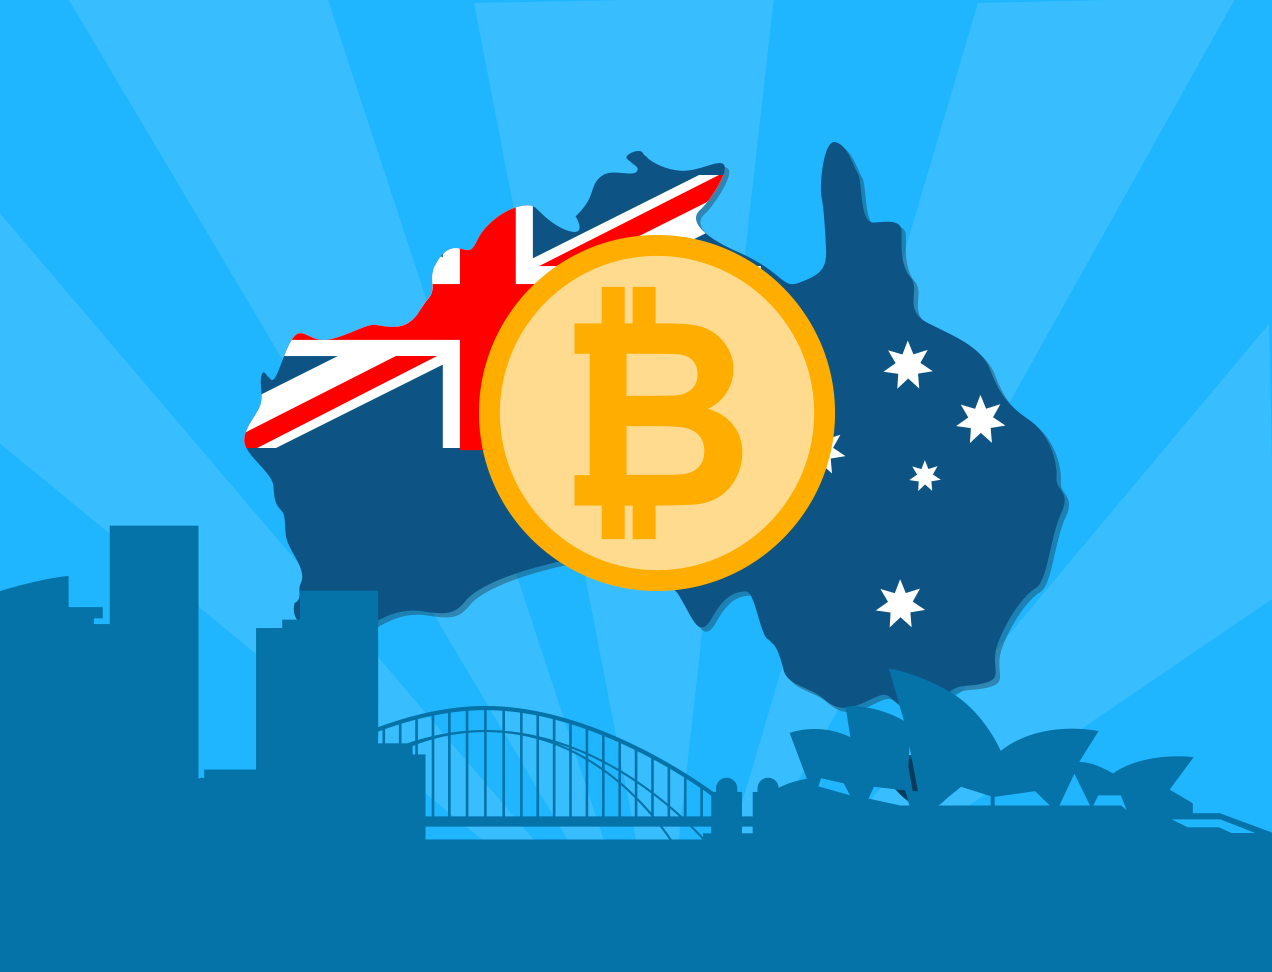 Bitcoin Adoption Increases in Australia